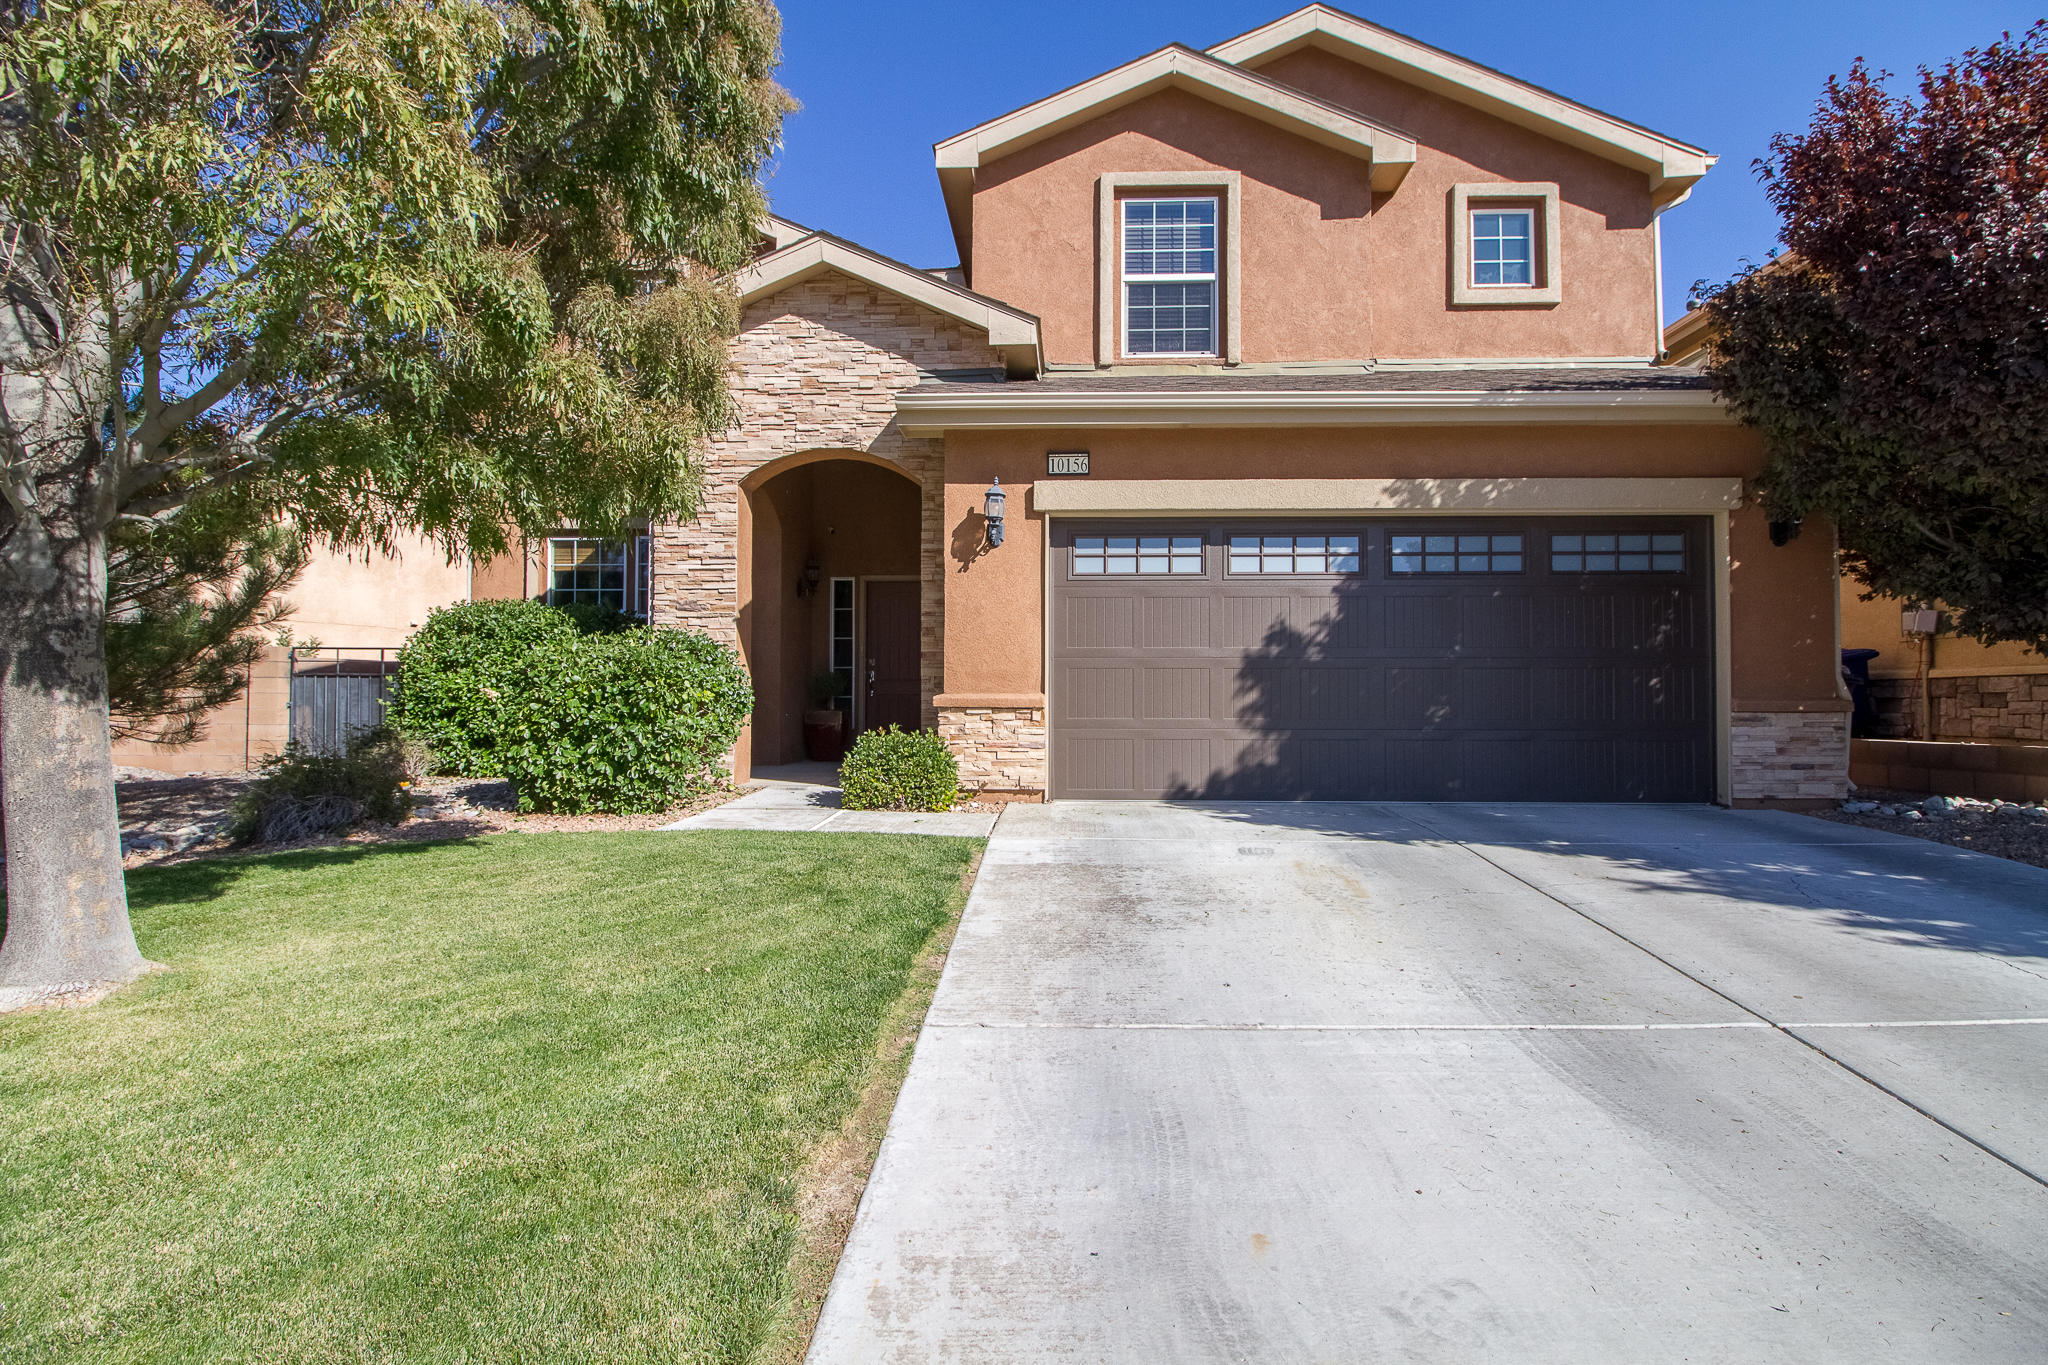 This Beautiful Pulte home in the Gated Community of Ventana Vista. The Home offers High ceilings, an open floor plan, newer flooring ,and the 4th bedroom is on the main level. Take a look at the Over sized epoxied garage, newer insulated garage door with WiFi garage door opener- room for 2 vehicles and toys! Side yard access for more! Relax and enjoy your East facing covered patio in the in the large back yard.